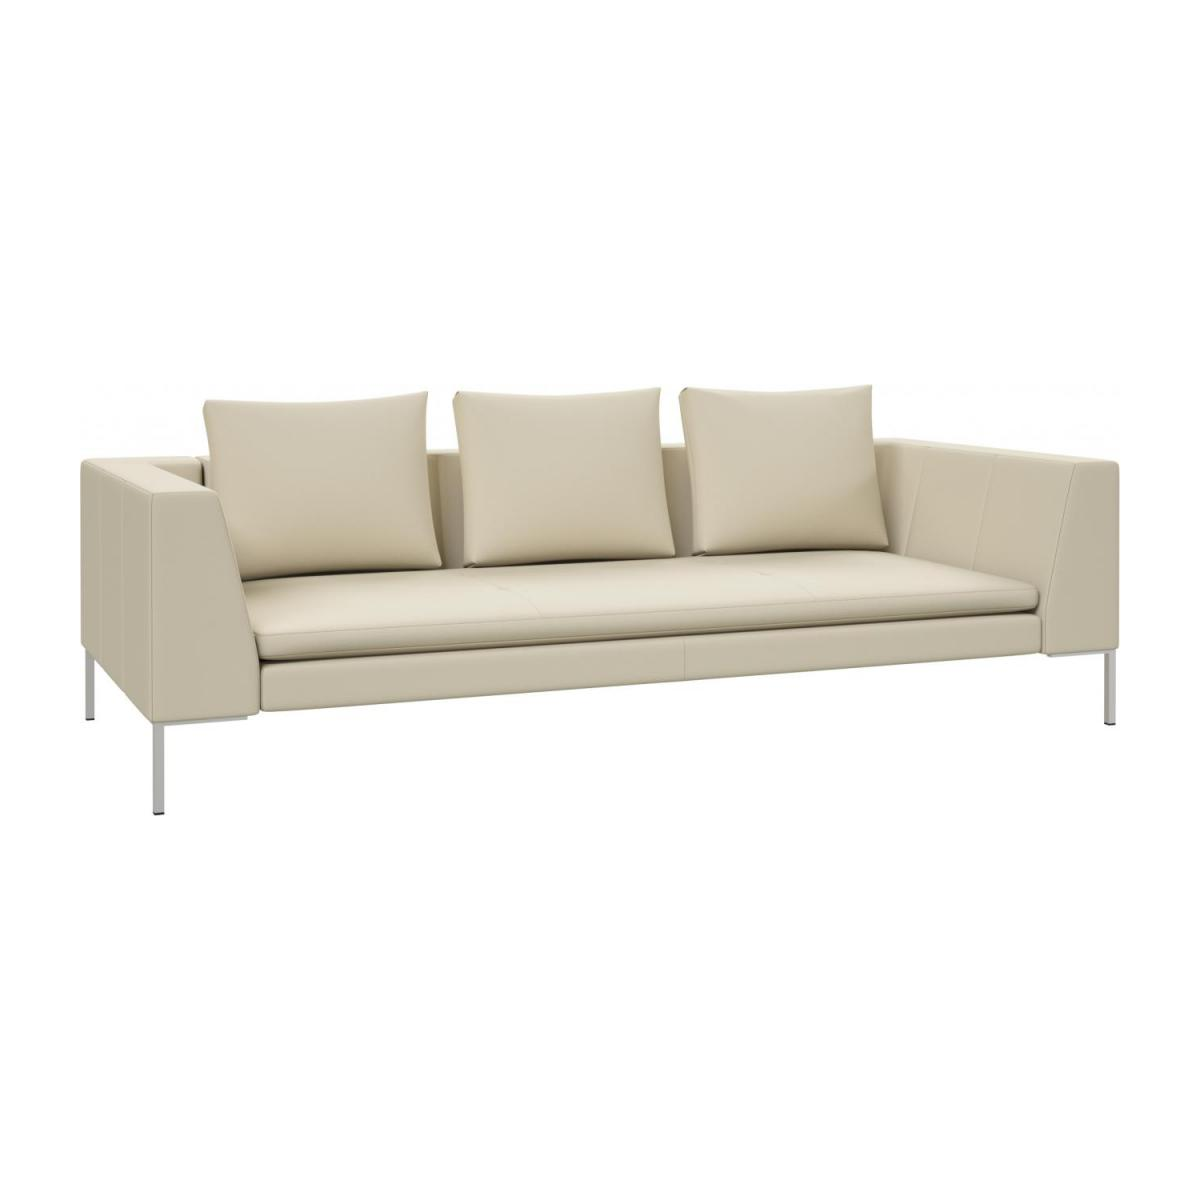 3 seater sofa in Savoy semi-aniline leather, off white n°1